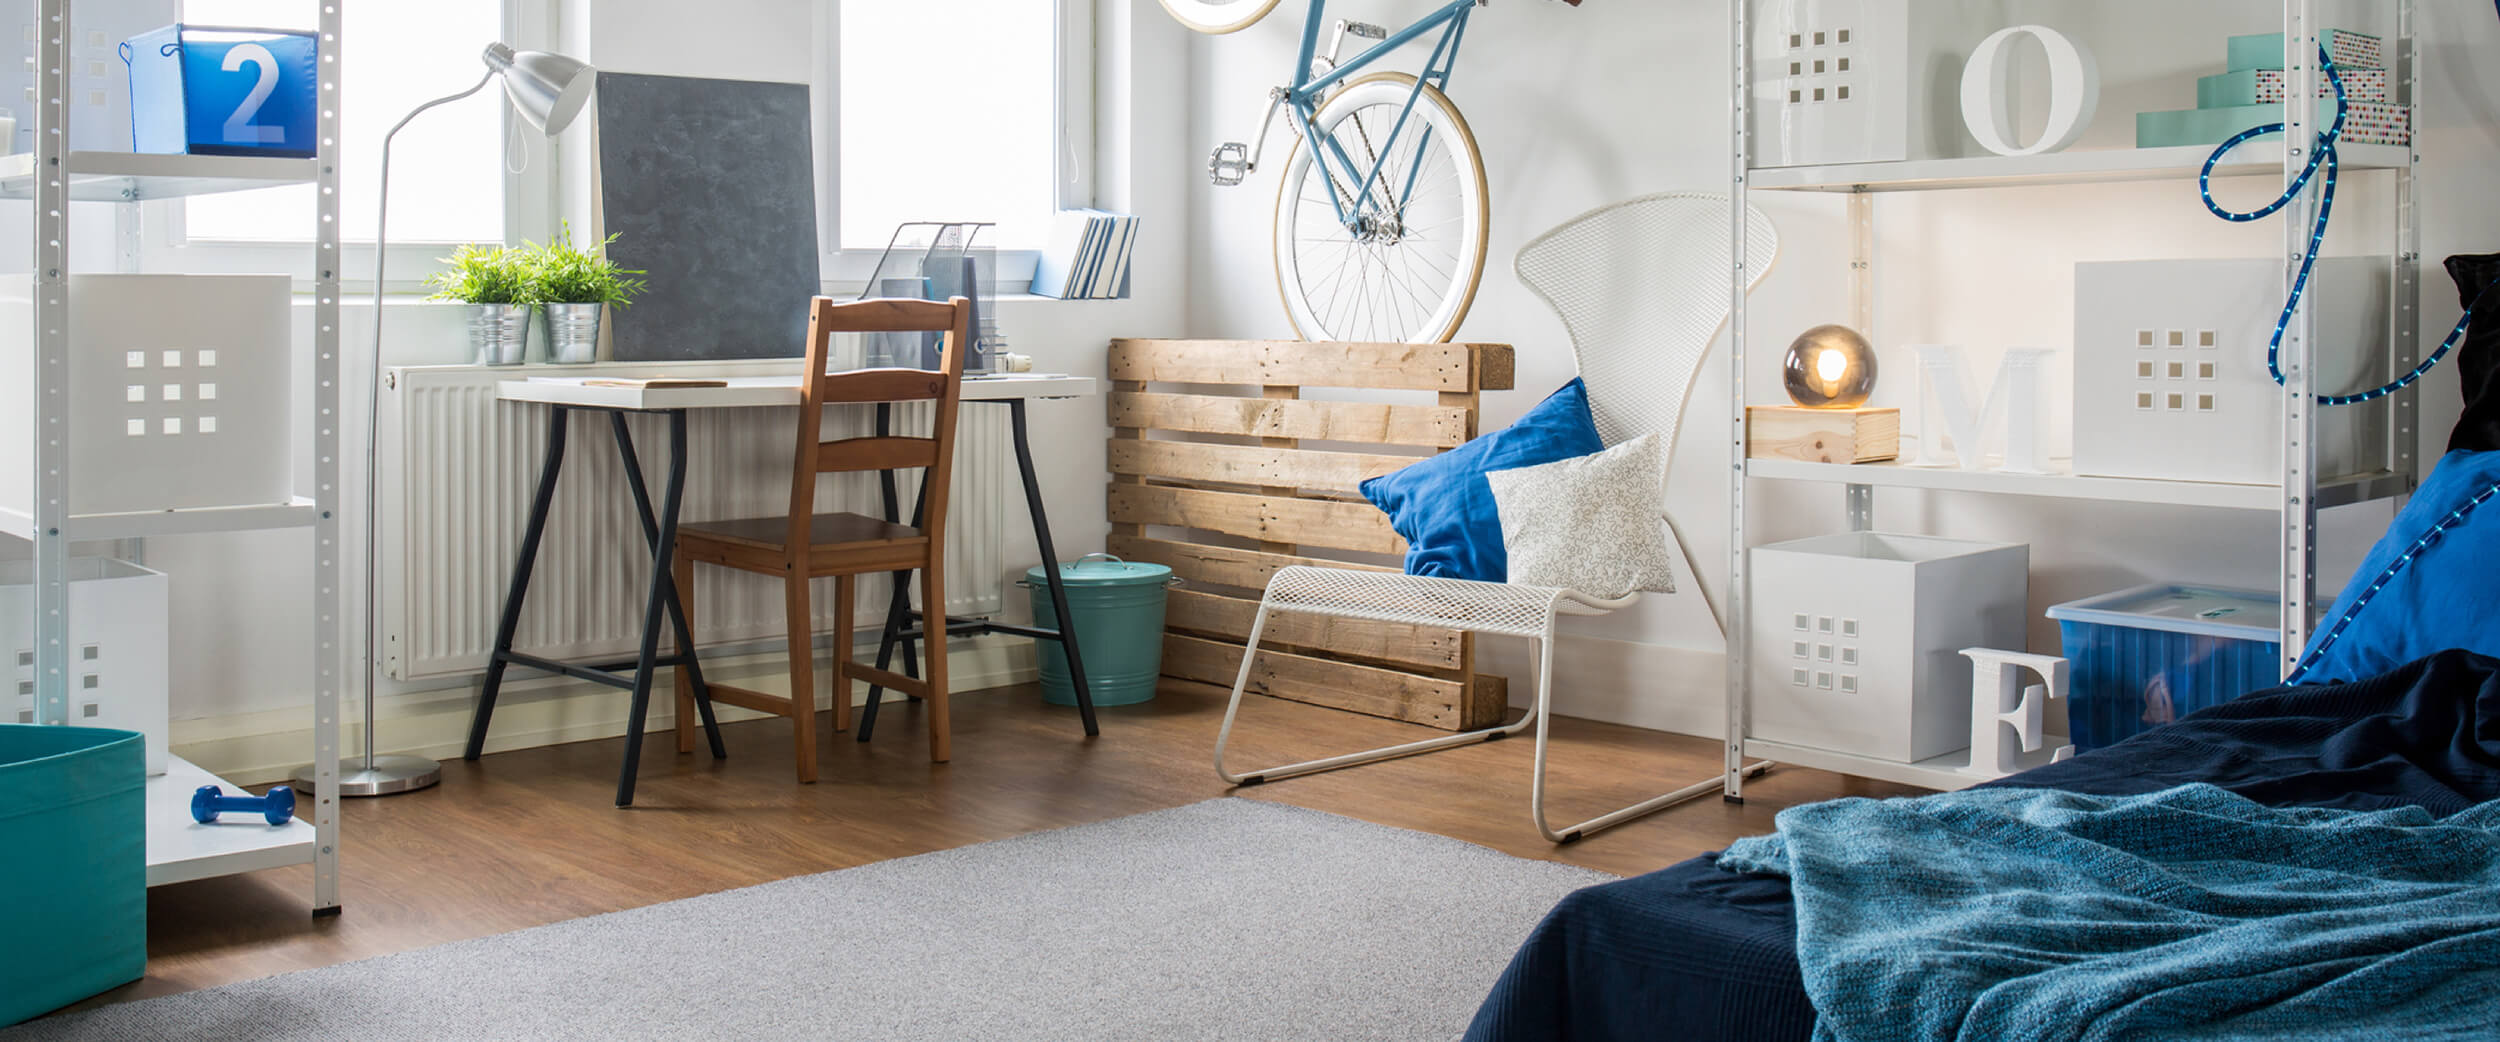 5 Apartment Design Trends To Consider If You're Ready To